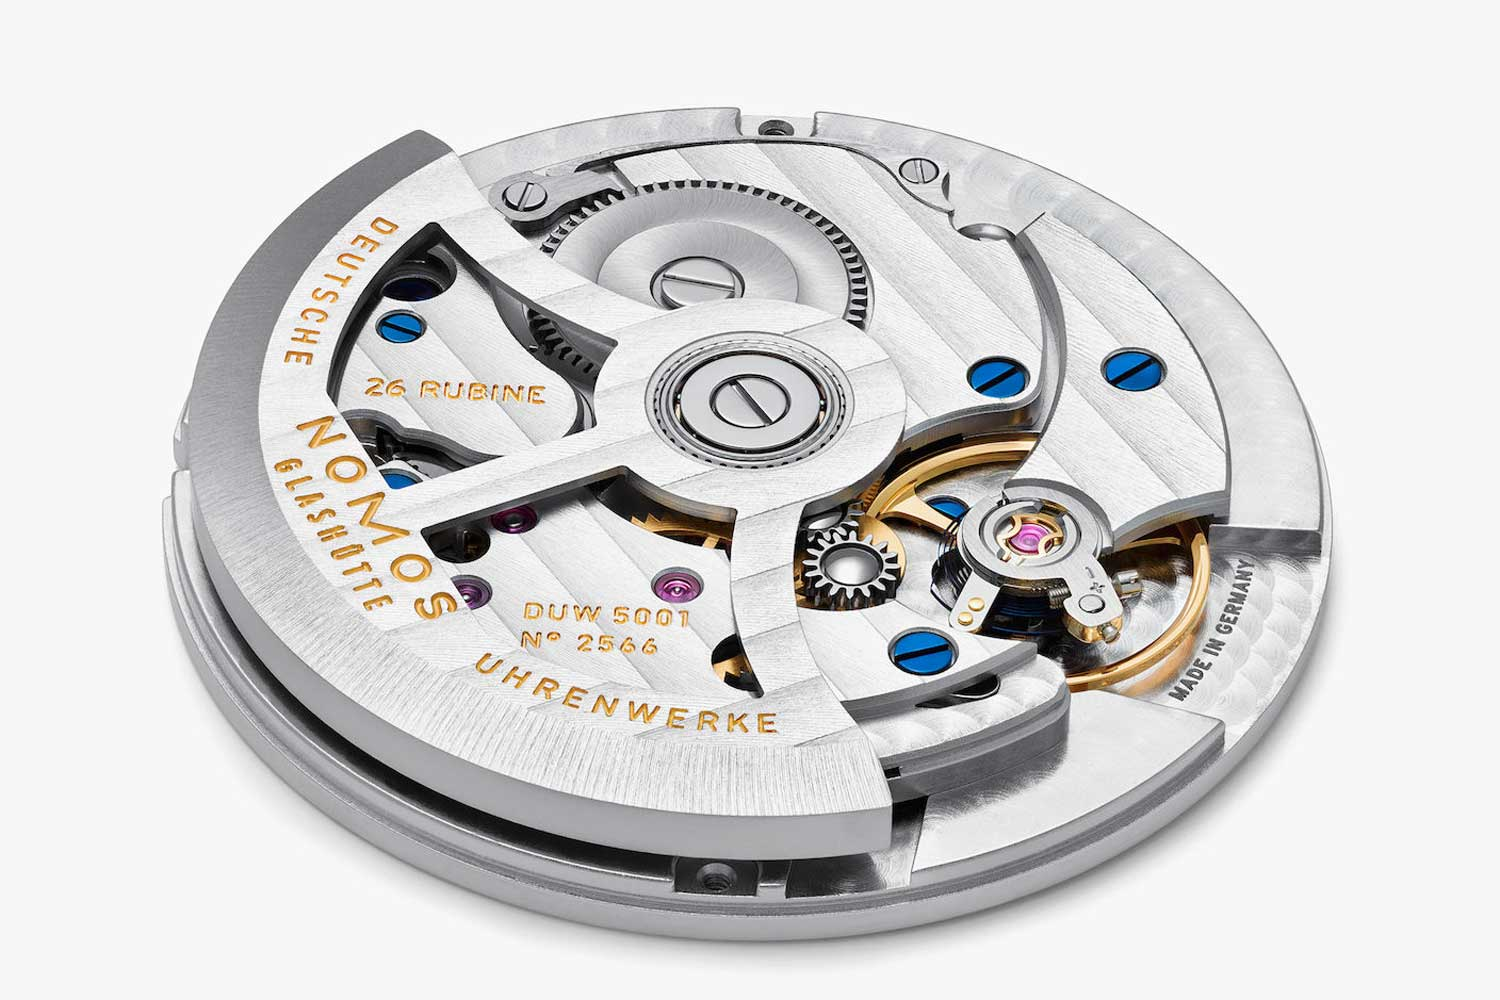 Water-resistant up to 200 meters, the Club Automatic is powered by the in-house DUW 5001 automatic movement.